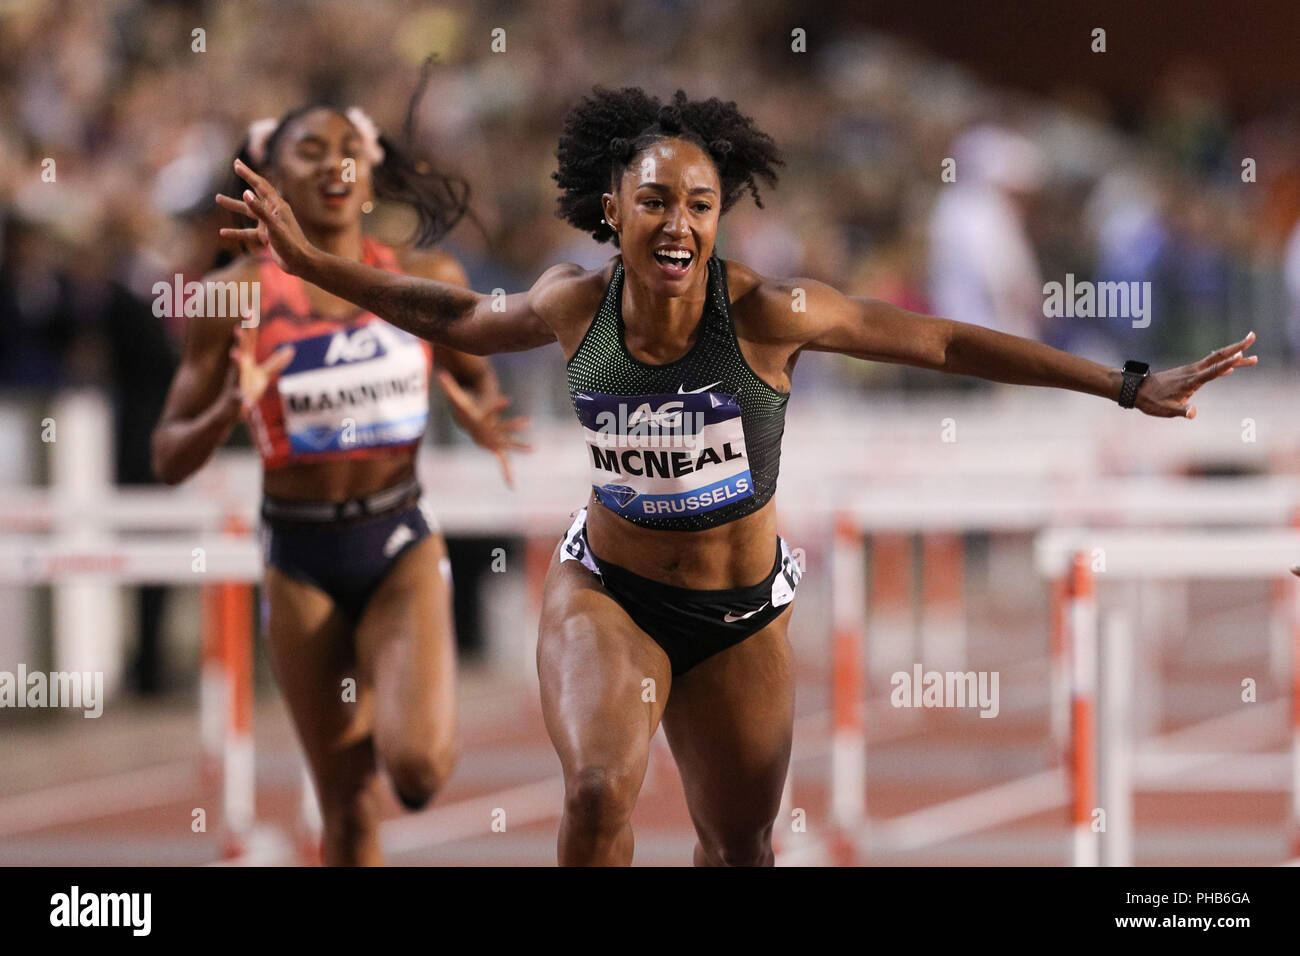 Brussels, Belgium. 31st Aug, 2018. Brianna McNeal (Front) of the United States celebrates after the women's 100m hurdles at the IAAF Diamond League athletics meeting in Brussels, Belgium, Aug. 31, 2018. Brianna McNeal claimed the title in a time of 12.61 seconds. Credit: Zheng Huansong/Xinhua/Alamy Live News - Stock Image